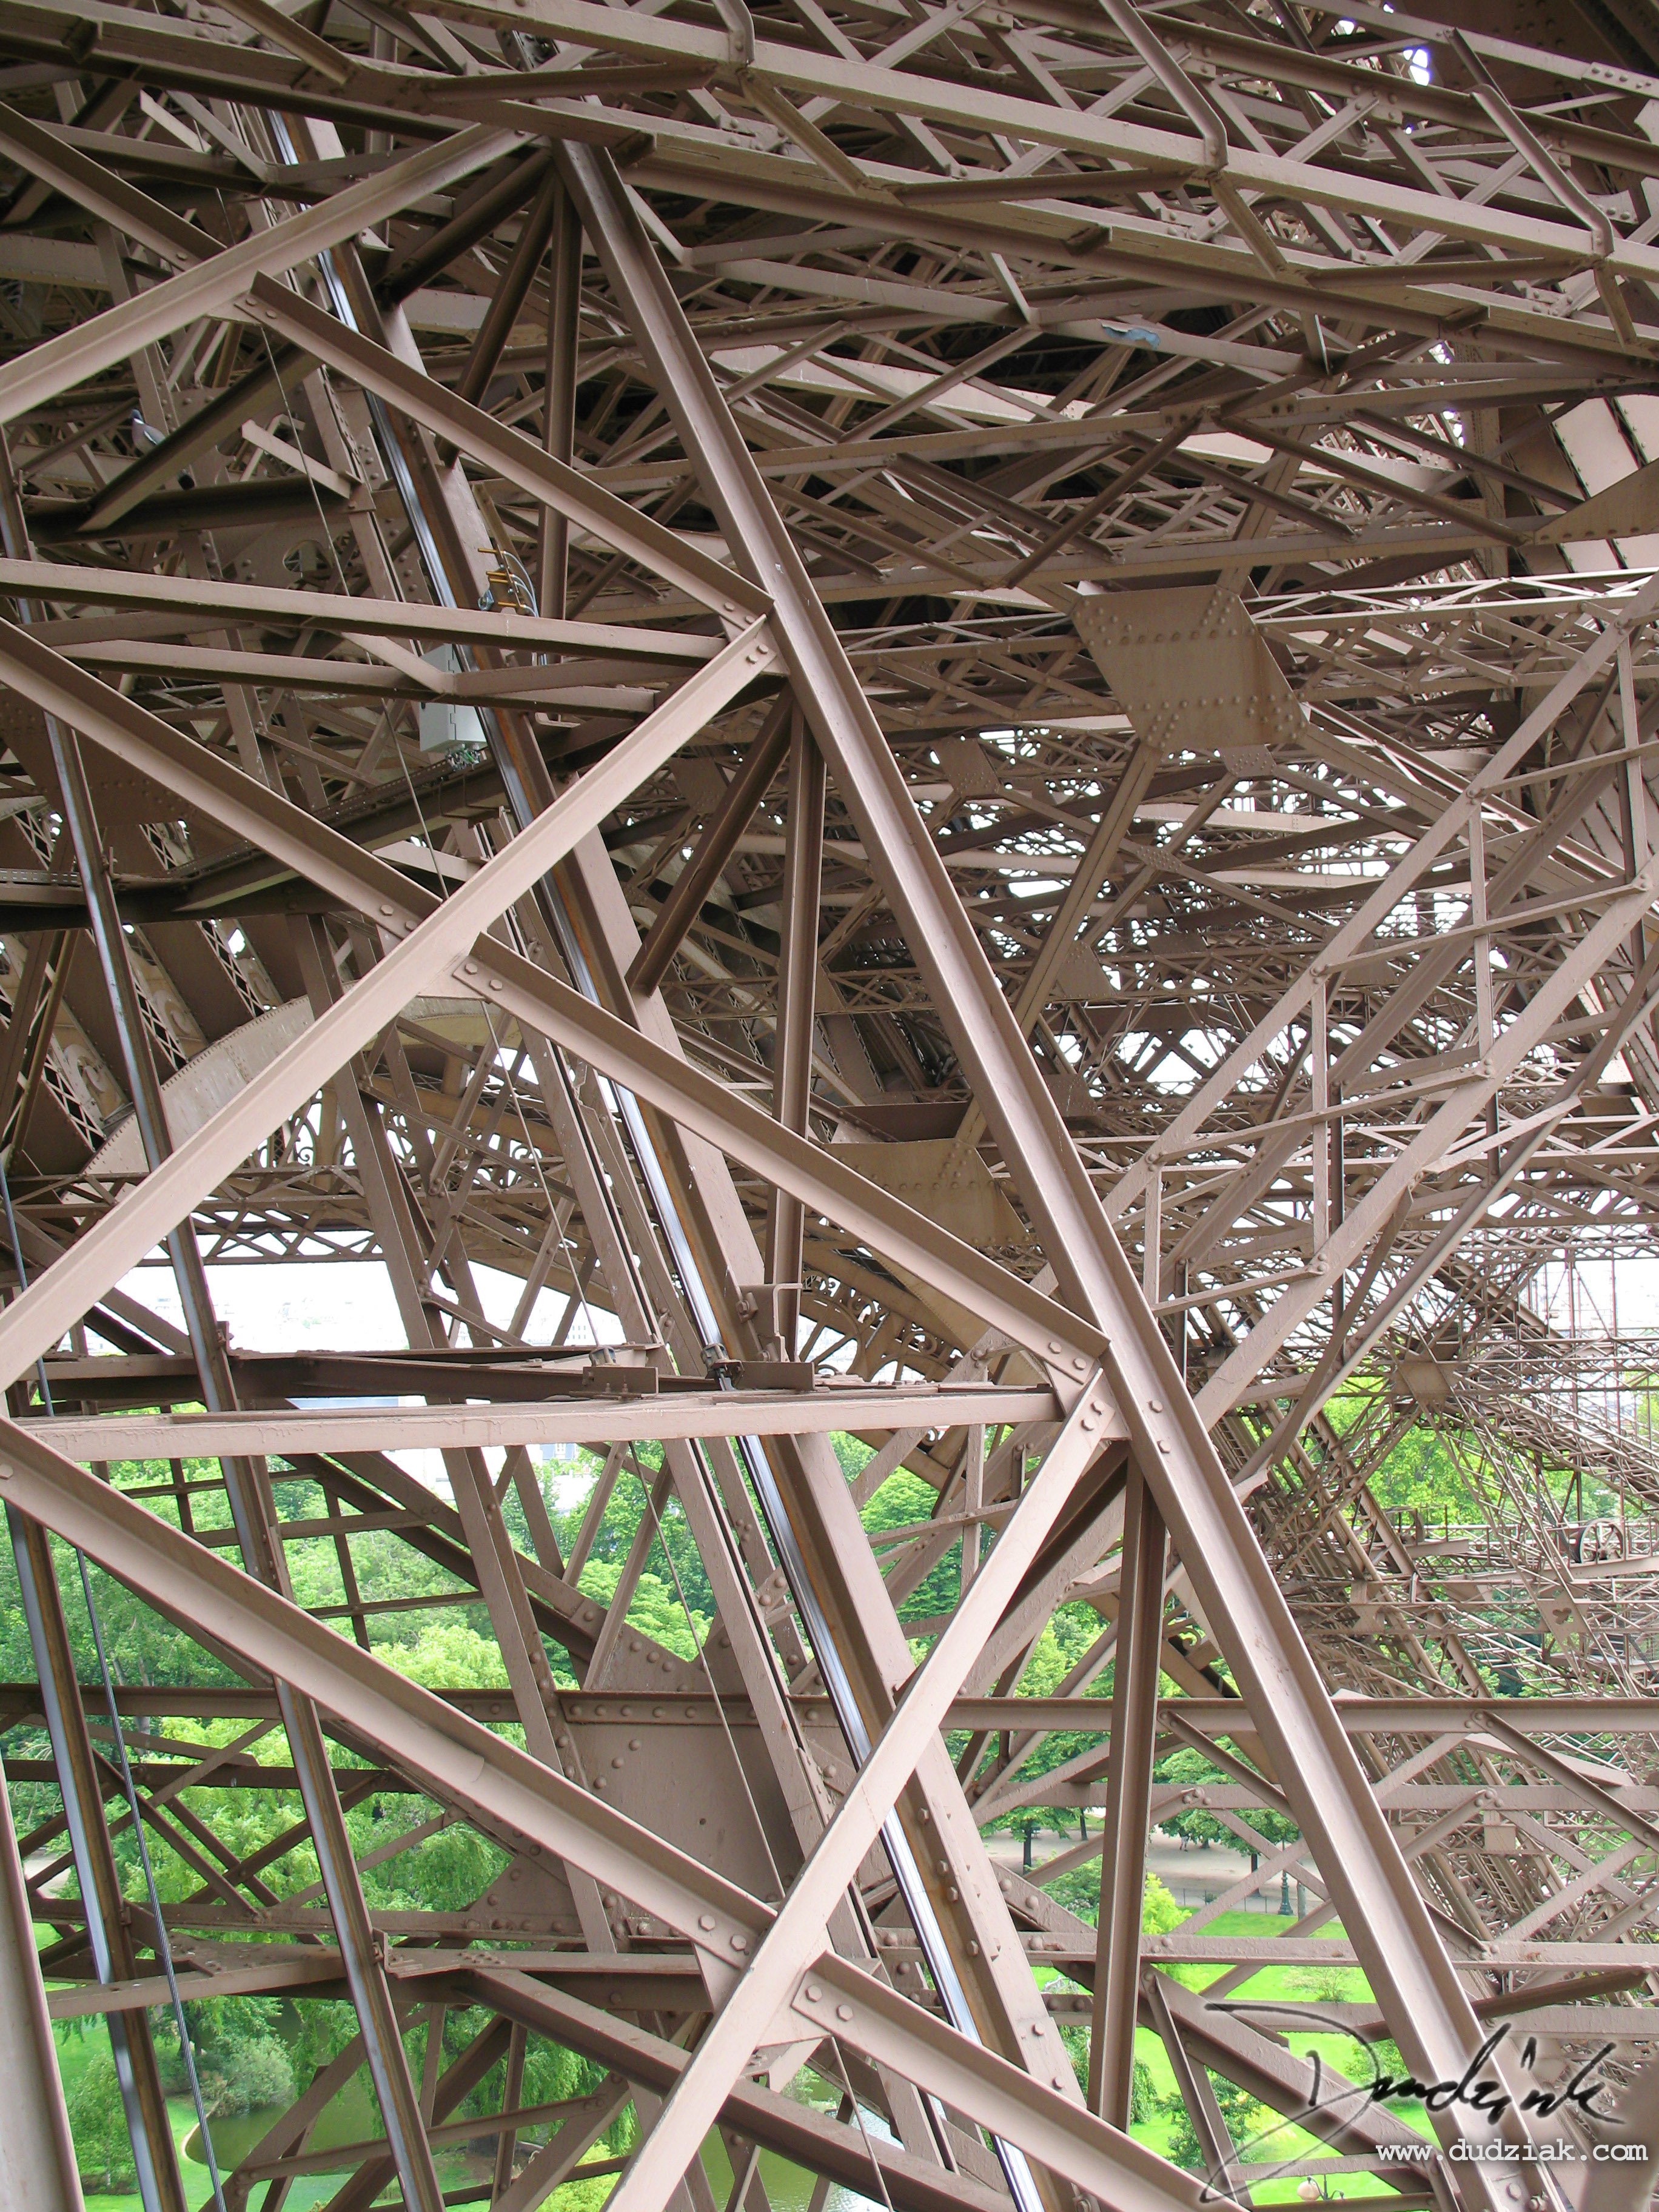 Tour Eiffel,  metalwork,  champ de mars,  steel,  eiffel tower